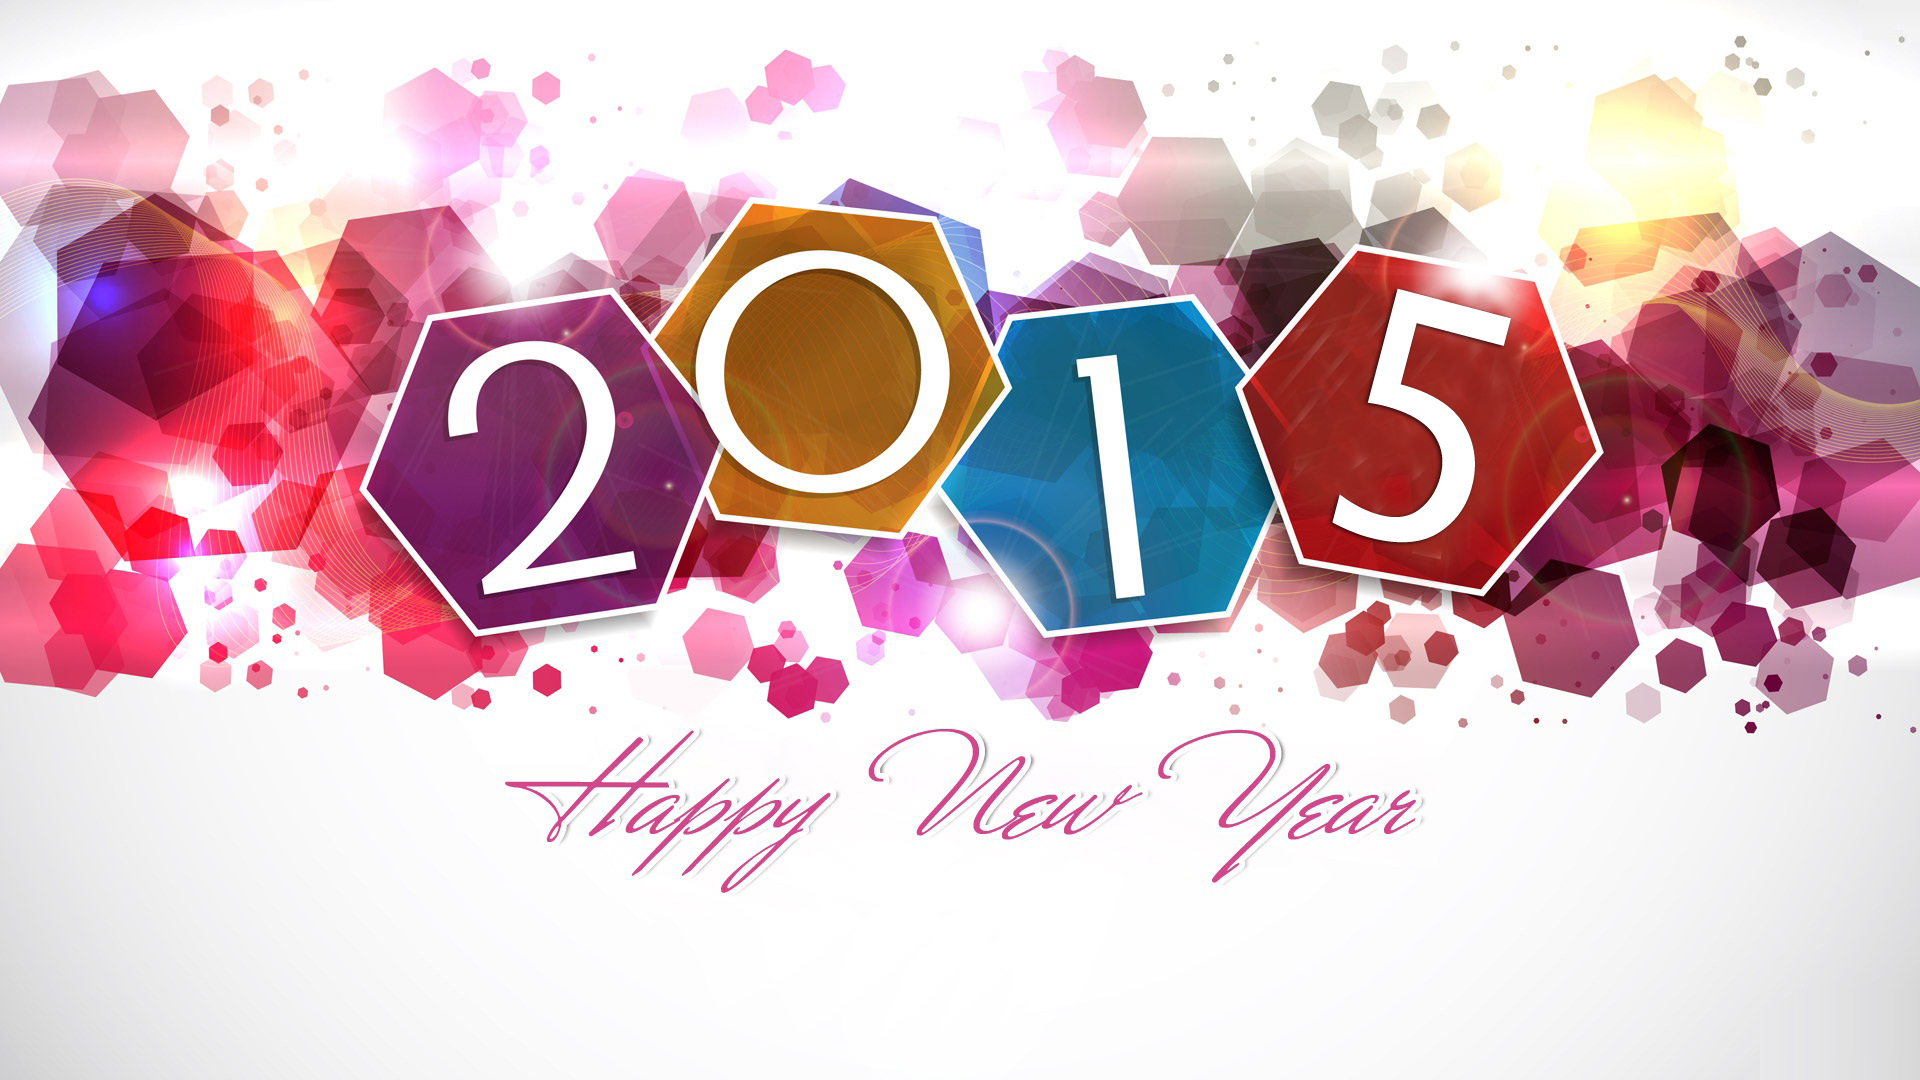 2015 New Year Wallpaper 1920x1080